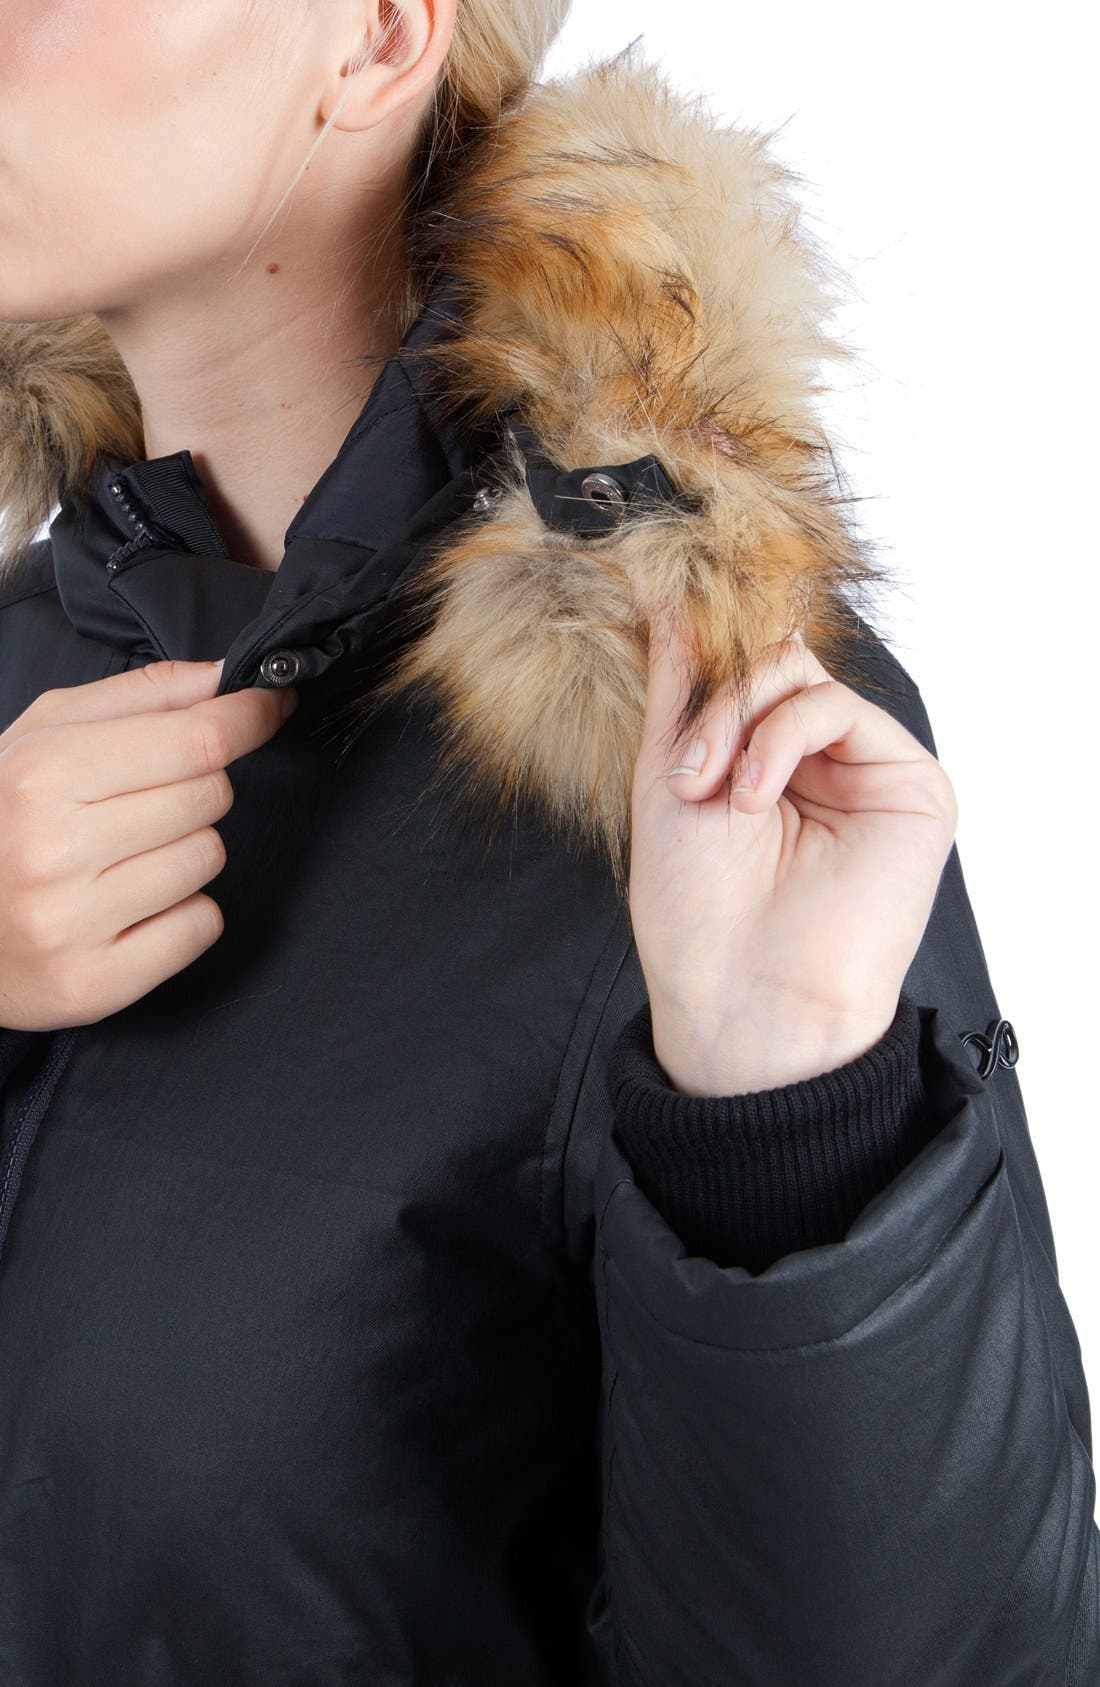 Sofia Waxed 3-in-1 Maternity/Nursing Jacket with Faux Fur Trim,                             Alternate thumbnail 6, color,                             Black